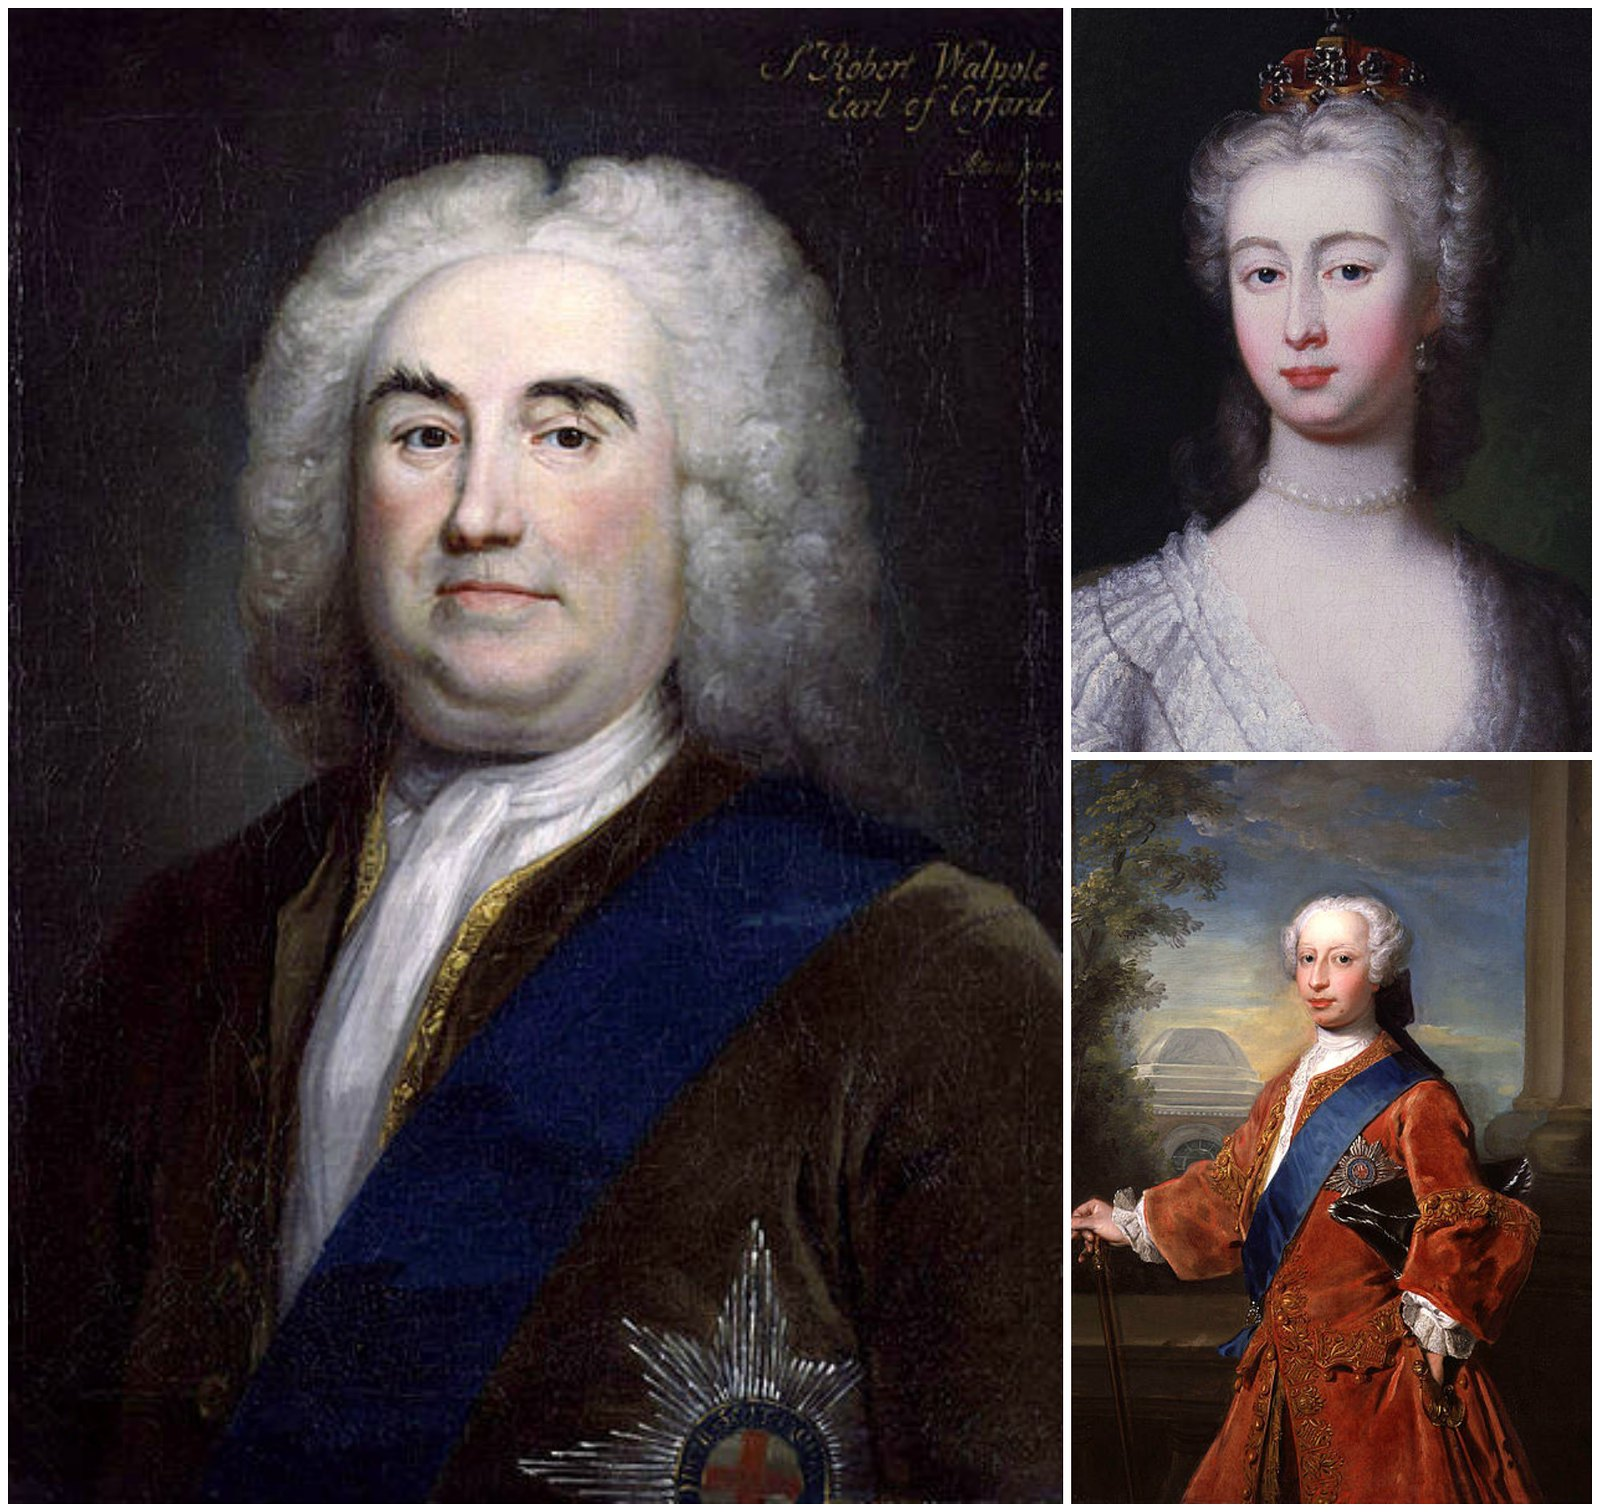 Robert Walpole, 1st Earl of Orford and Prime Minister of Great Britain (left) preferred Augusta of Saxe-Gotha (top right) as a match for Frederick, Prince of Wales (lower right)